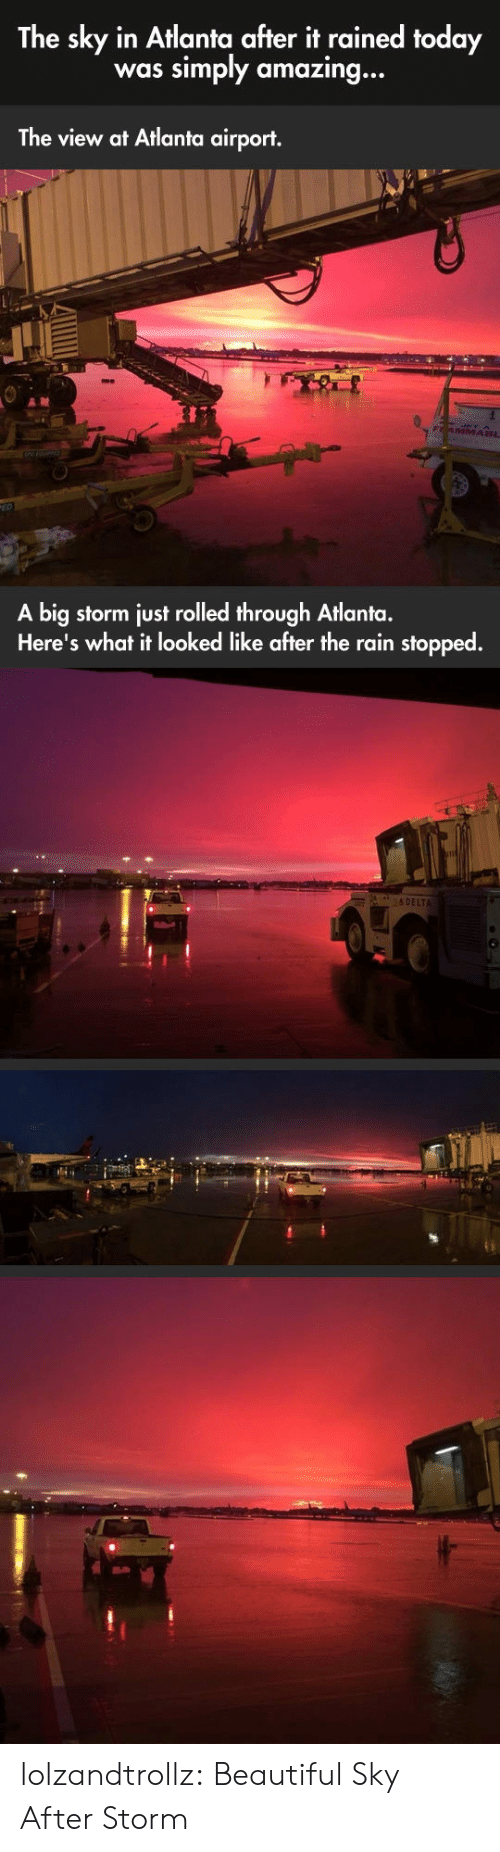 Beautiful, Tumblr, and Blog: The sky in Atlanta after it rained today  simply amazing...  was  The view at Atlanta airport.  FAMMA8L  A big storm just rolled through Atlanta.  Here's what it looked like after the rain stopped.  &DELTA lolzandtrollz:  Beautiful Sky After Storm